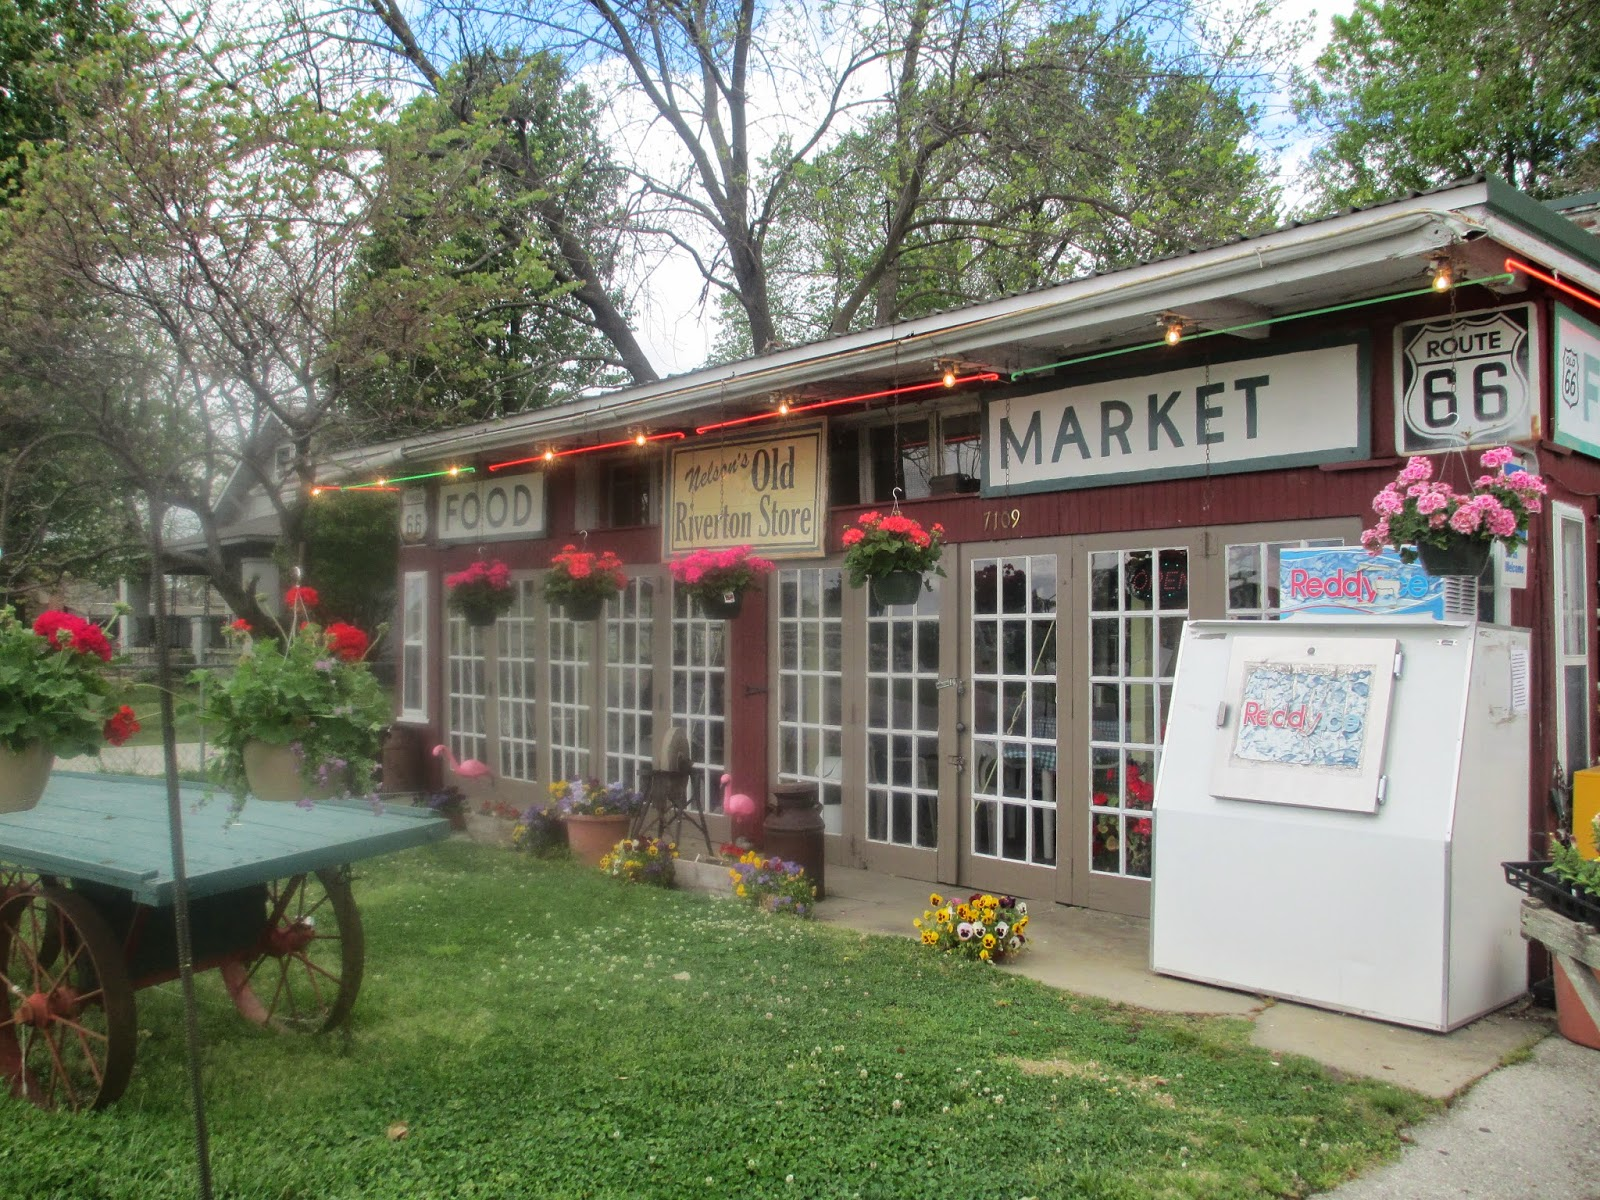 old riverton store in kansas, golden corral, will rogers museum and dennys in oklahoma